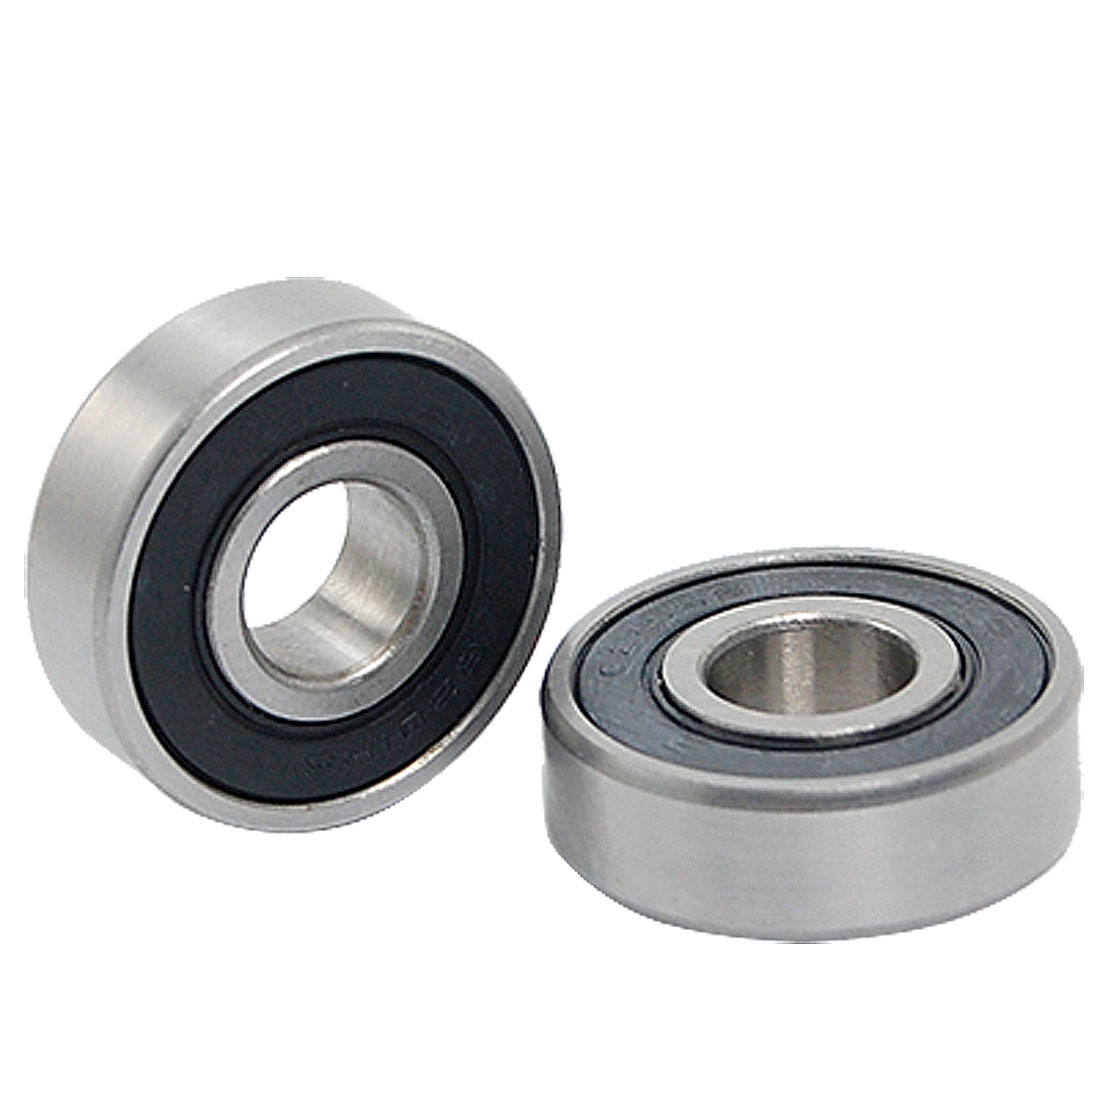 6202-2RS Deep Groove Ball Bearing Replacement 2 Pcs for Roller Sport